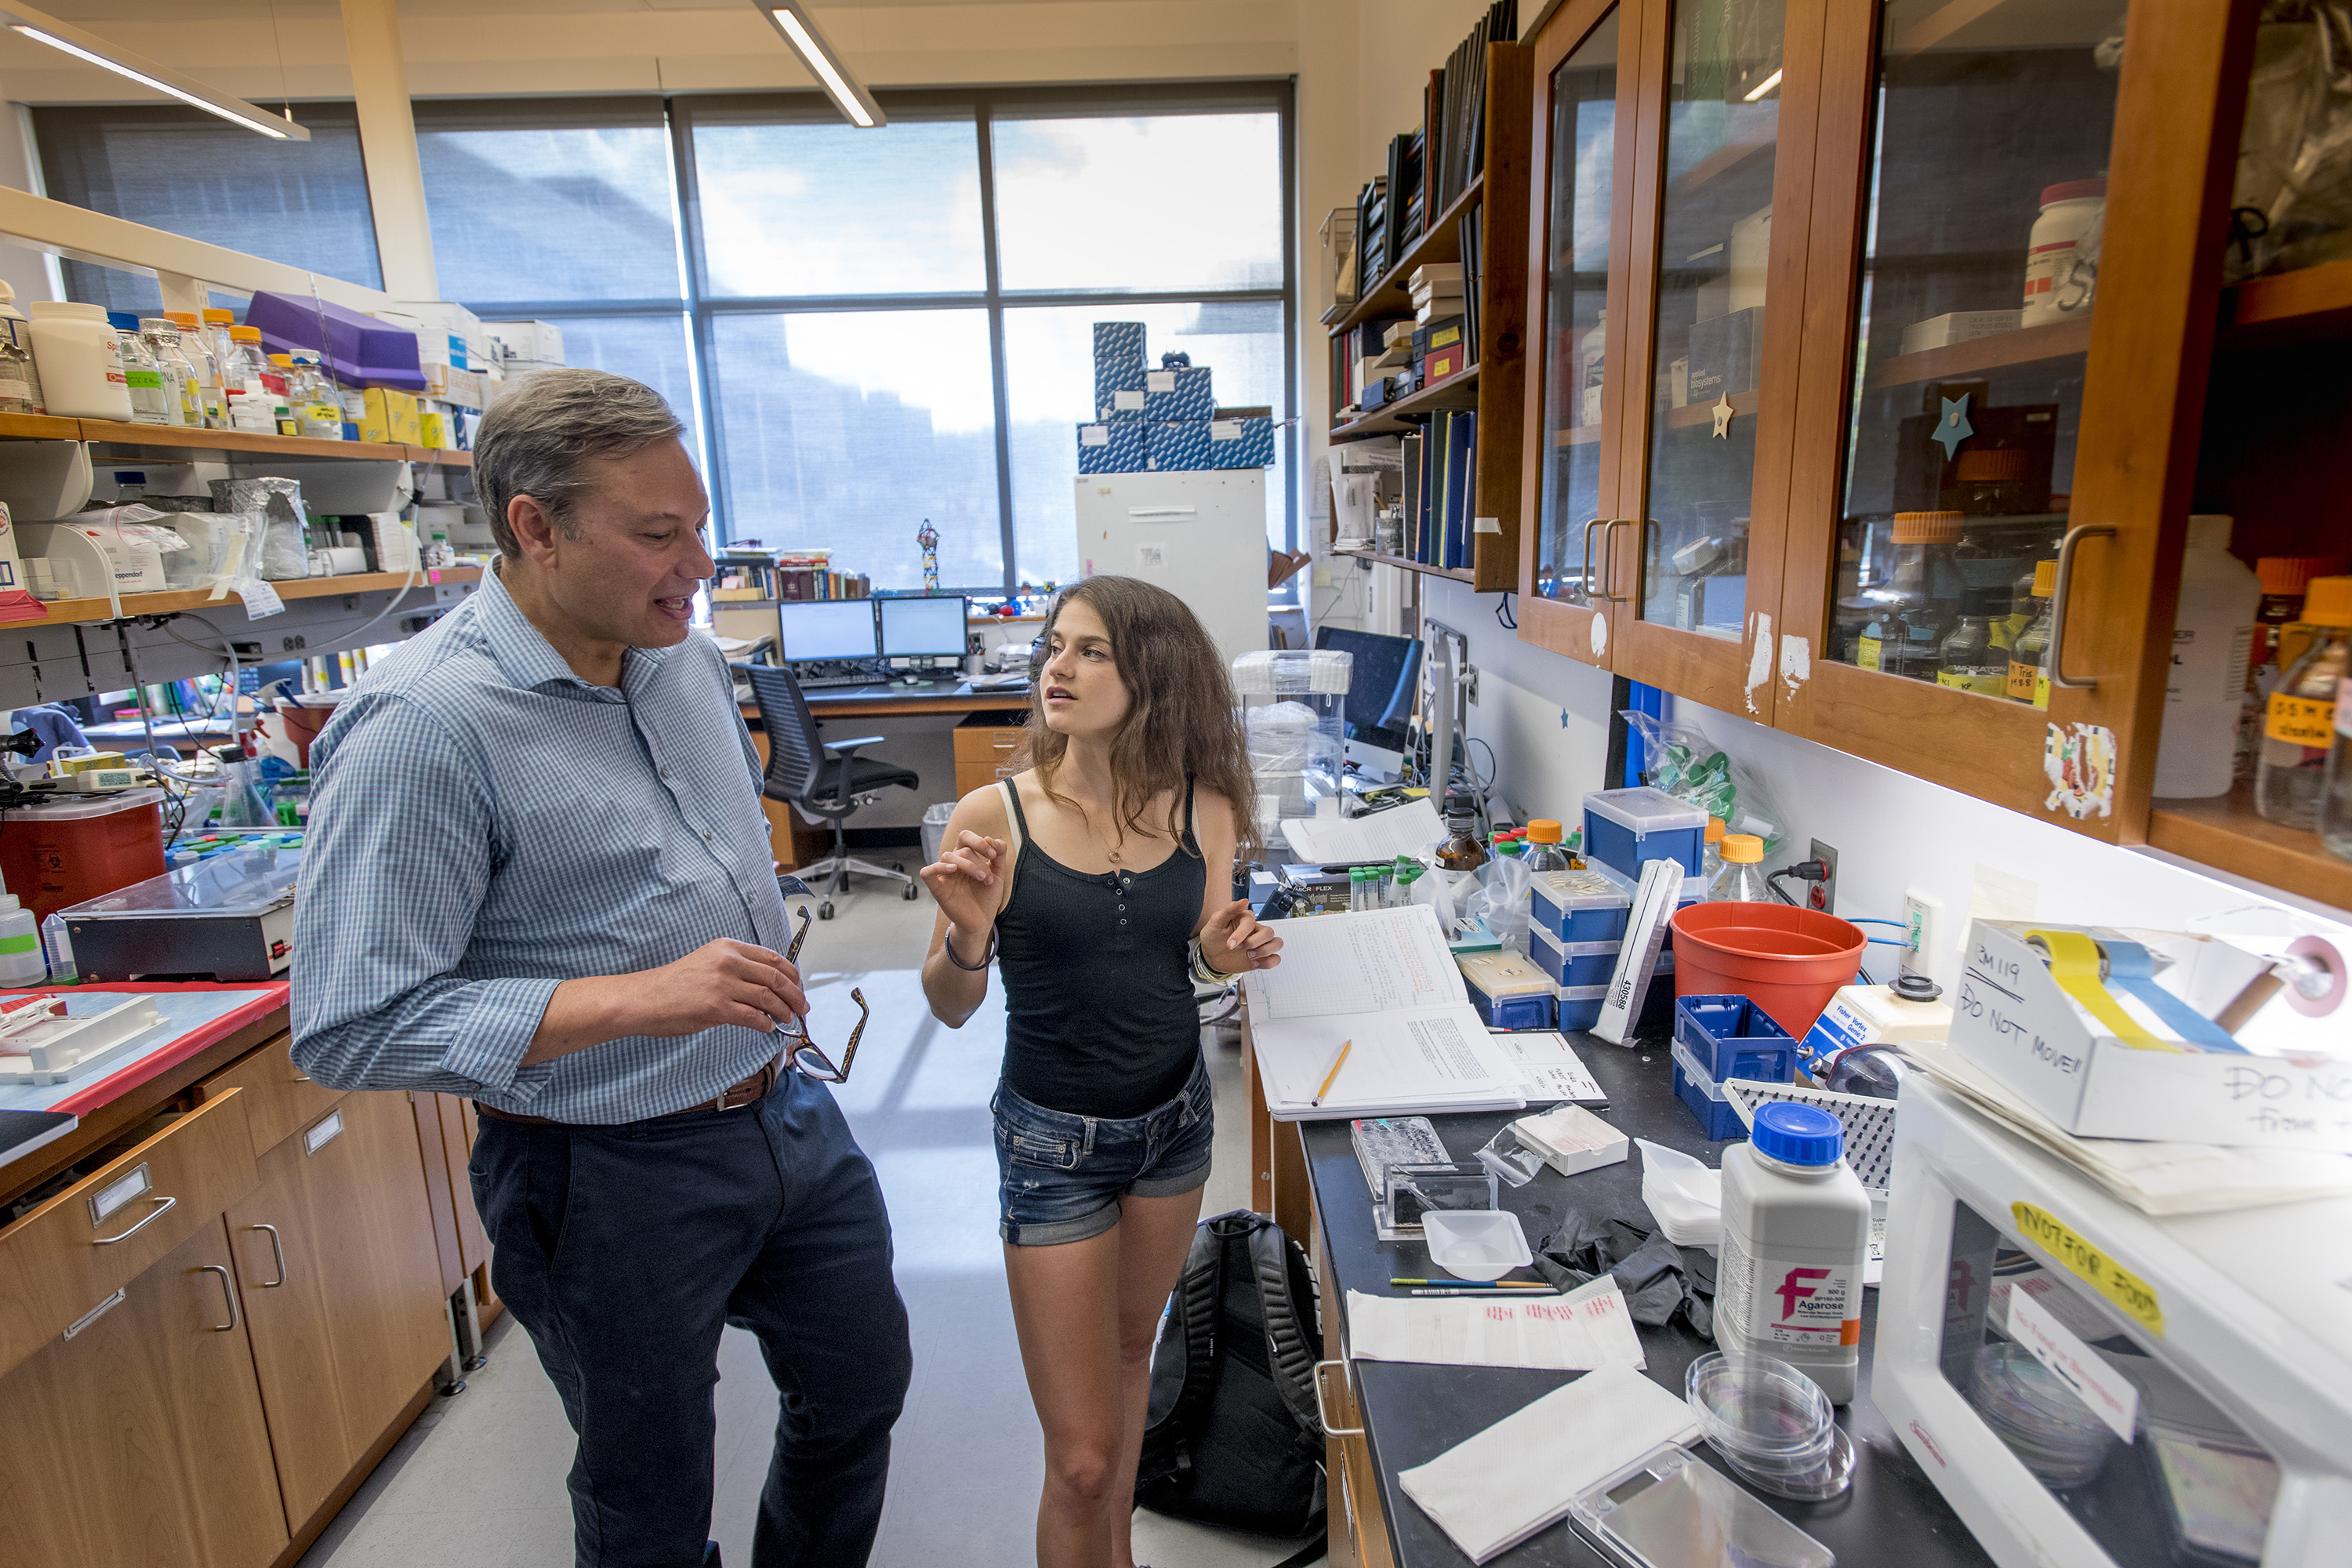 'Being a Husky teaches you how to be a better person – not just on campus, but for the rest of your life,' says Randazzo, an undergraduate researcher in the lab of Professor Joseph LoTurco and a student in the Special Program in Medicine as well as an athlete on the Women's Track team. (Sean Flynn/UConn Photo)